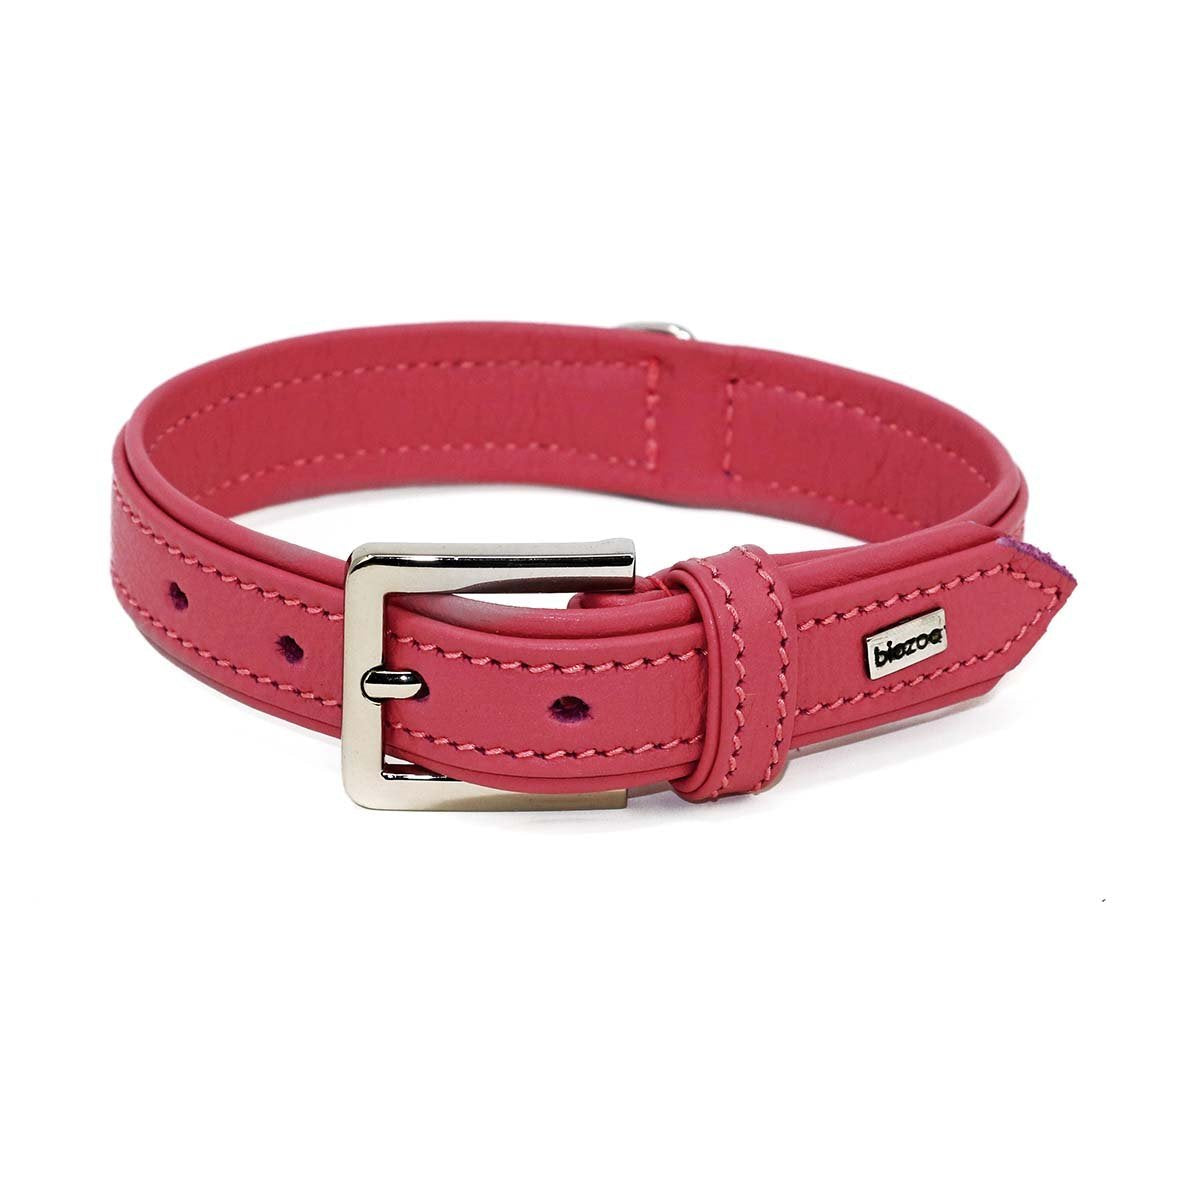 Provence Leather Collar-Collar-Biozoo-Pink-35 x 1,5 cm-Biozoopets